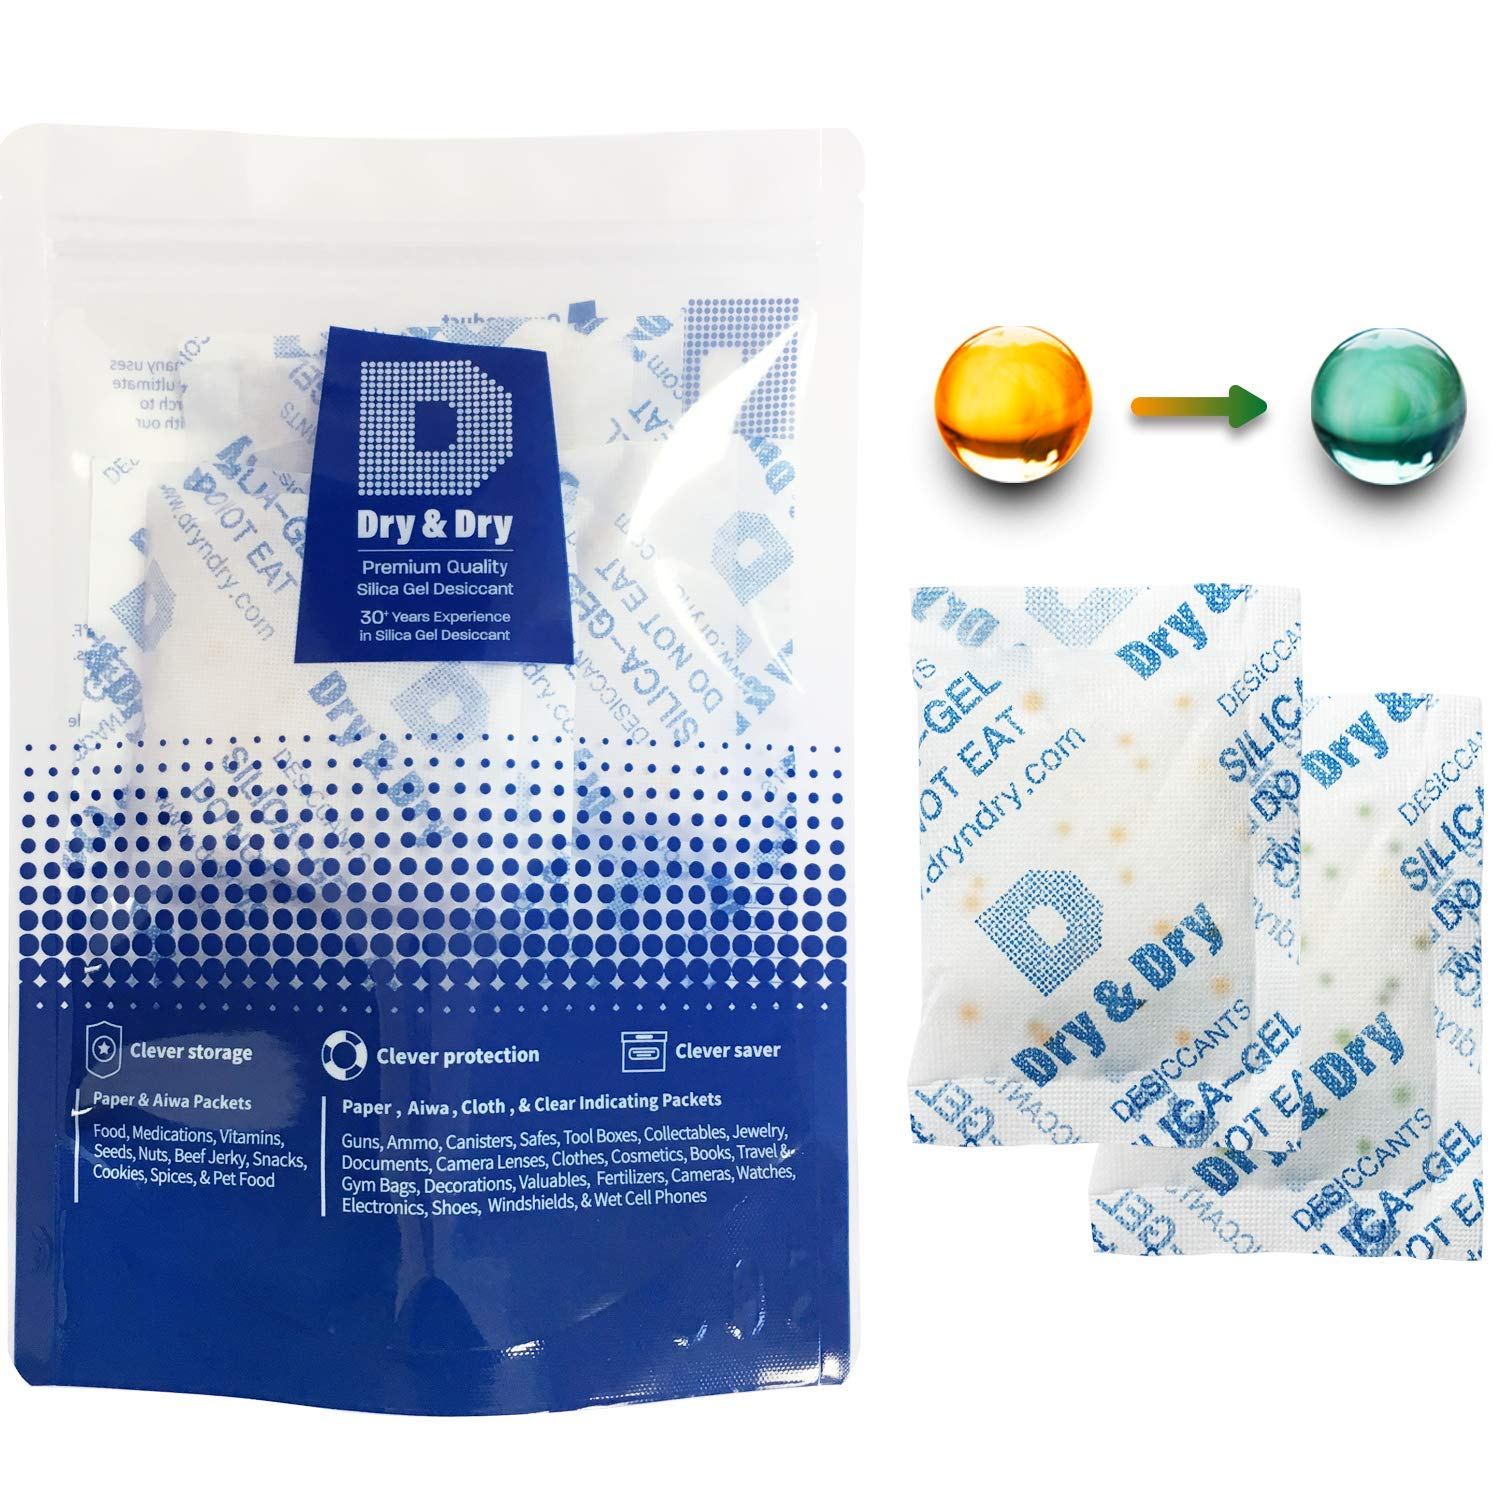 Dry & Dry 20 Gram [60 Packs] Premium Desiccant Food Safe Orange Indicating(Orange to Dark Green) Mixed Silica Gel Packets Dehumidifer - Rechargeable Silica Packets for Moisture Absorbers